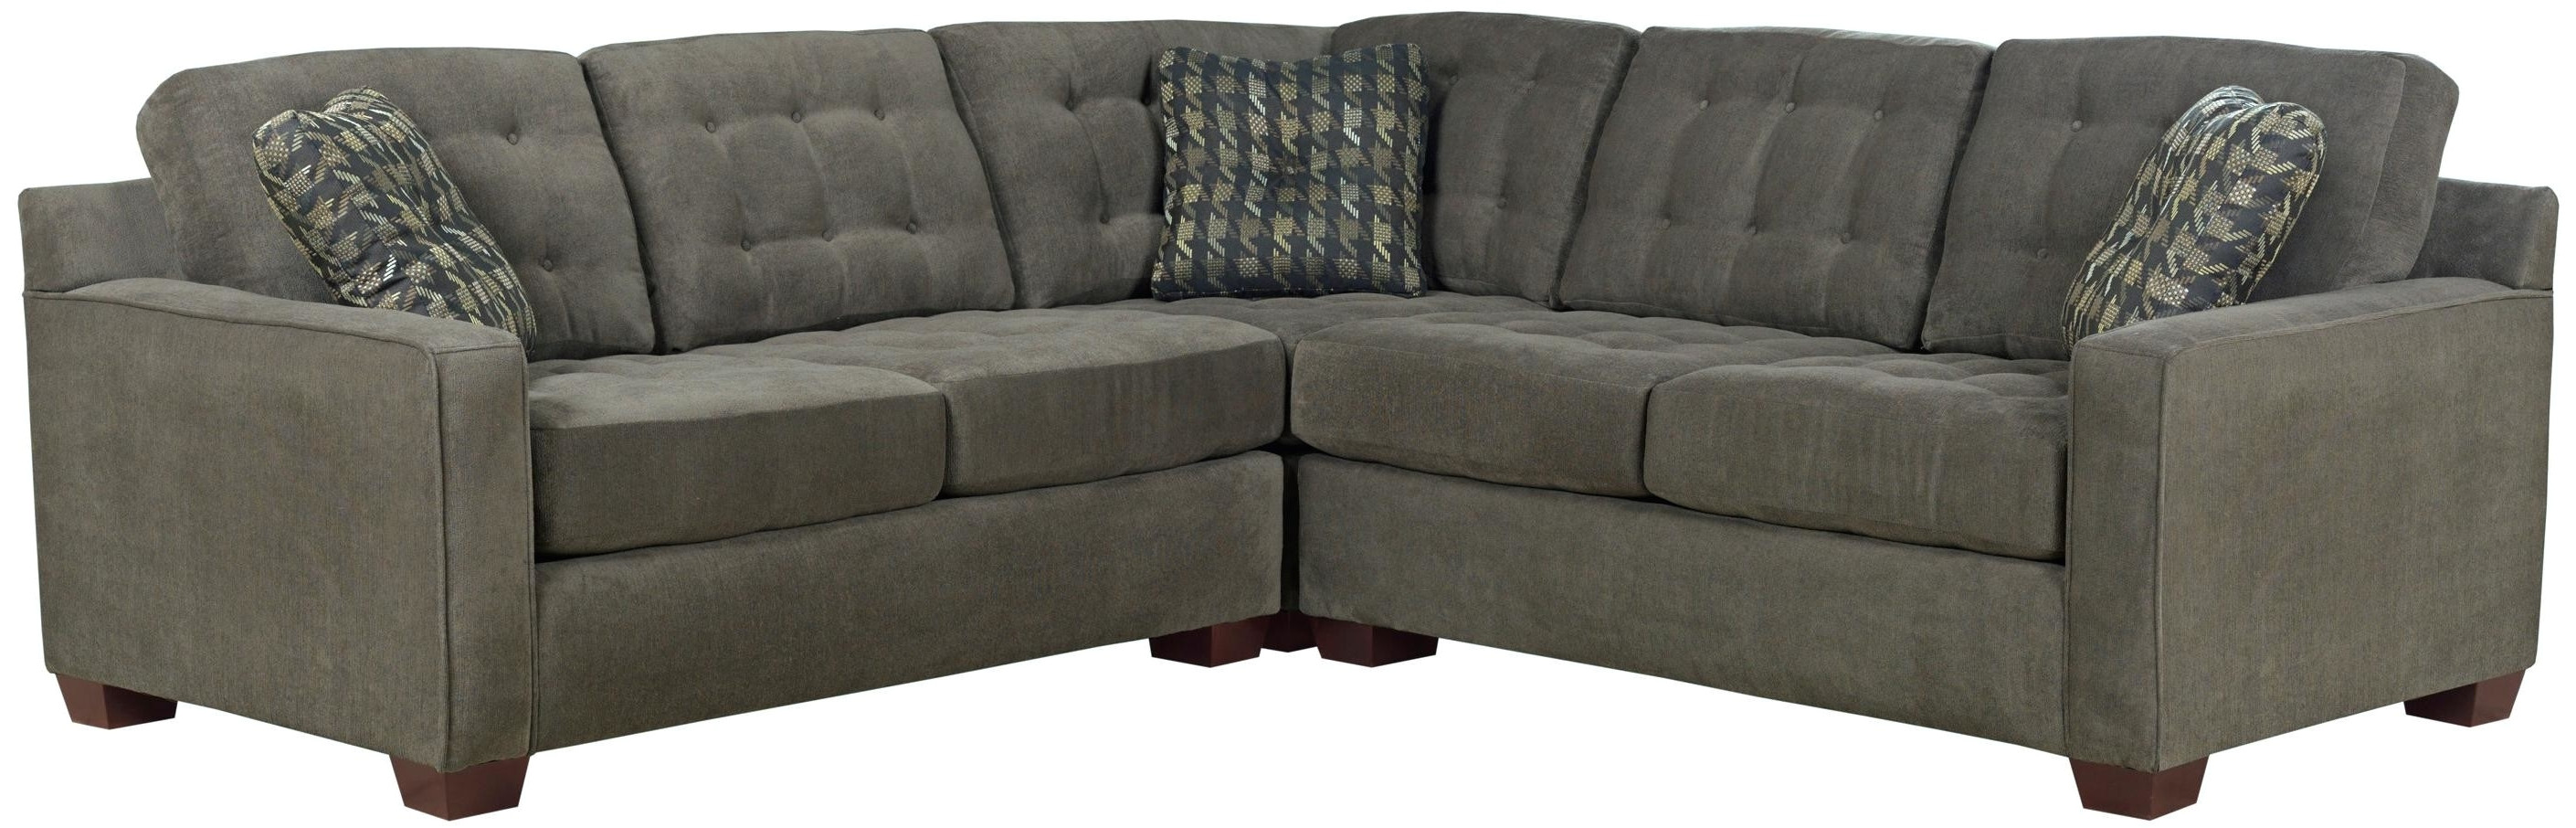 Homemakers Des Moines Patio Furniture 20 Collection Of Des ...